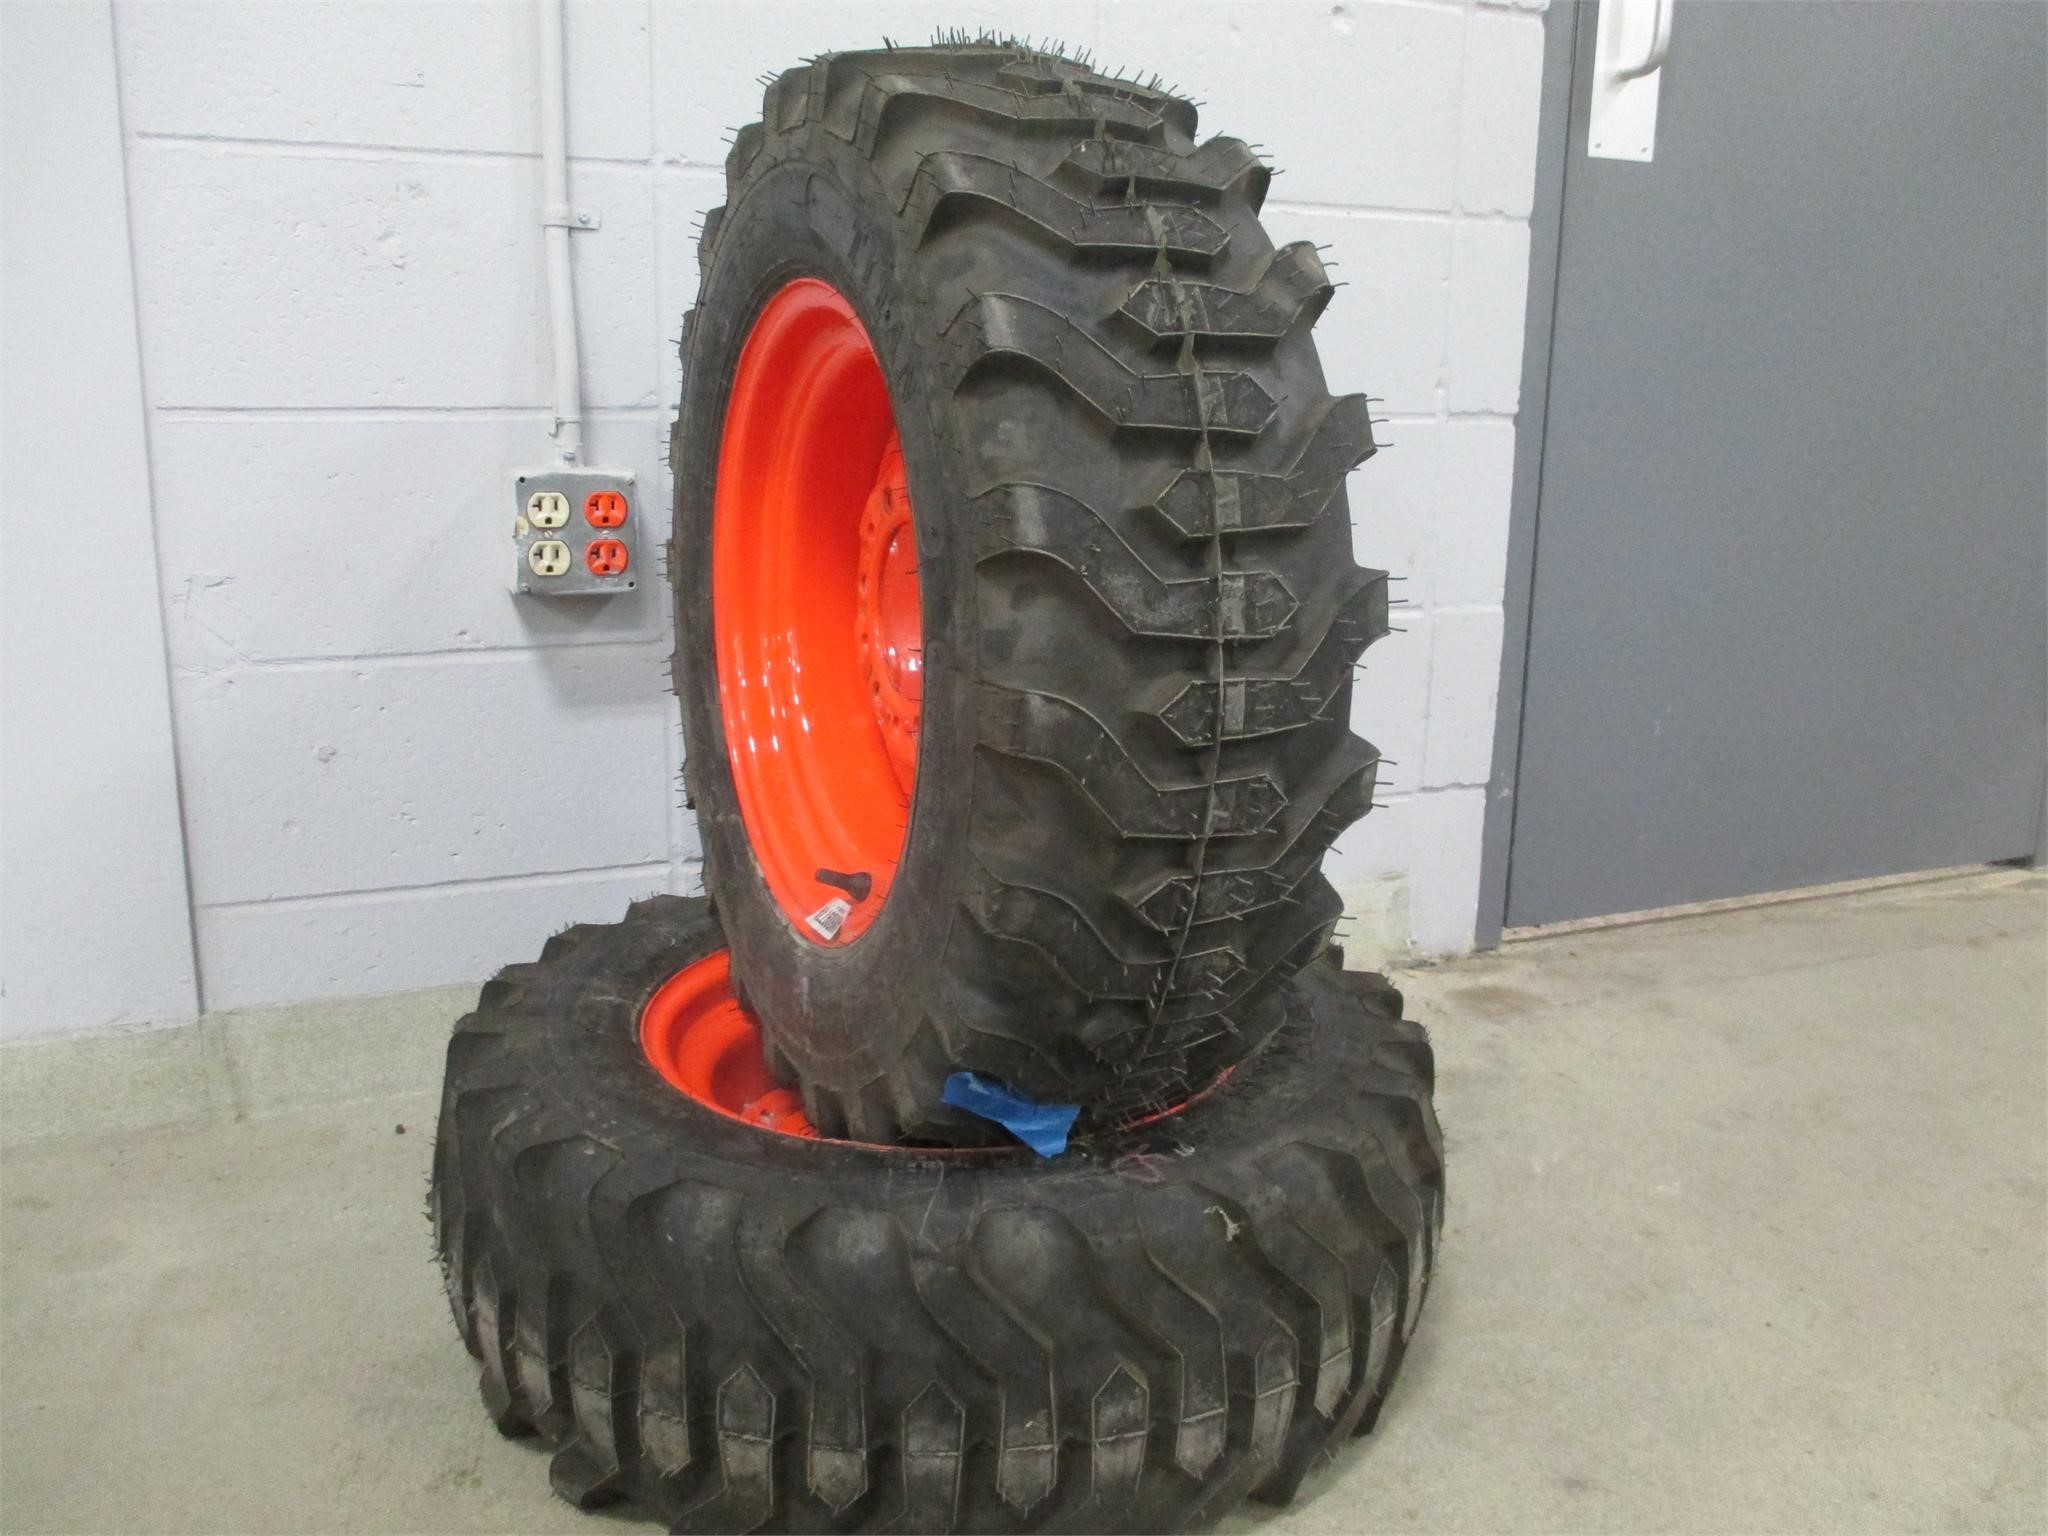 Kubota Tractor Tires And Wheels : New kubota amr attachments tires ebay